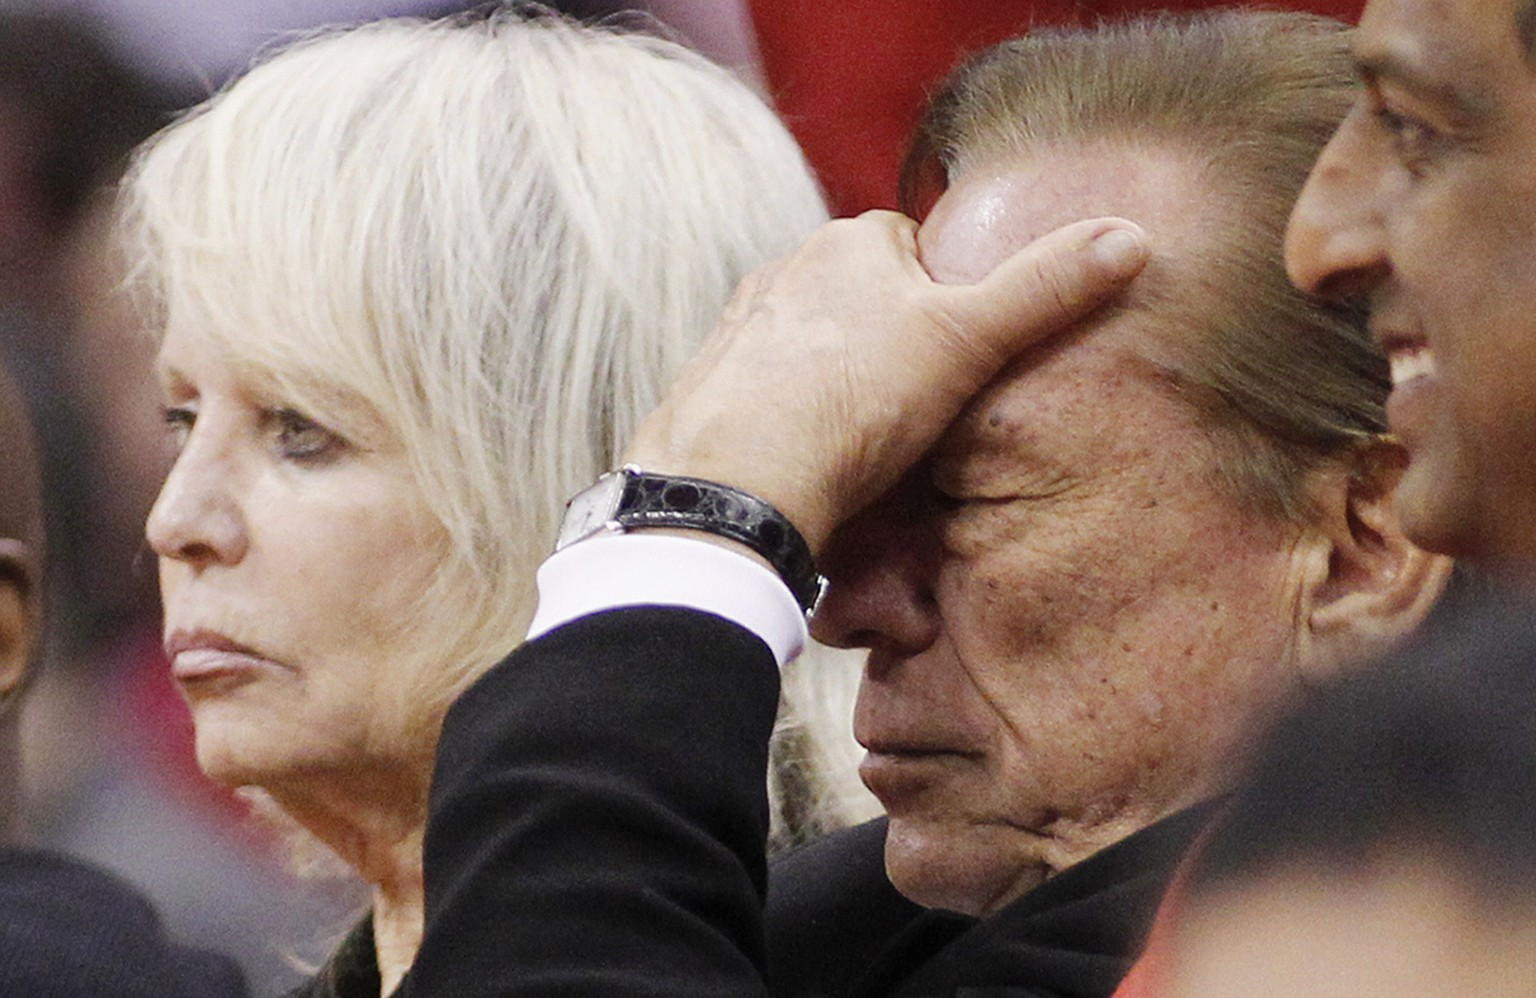 Los Angeles Clippers owner Donald Sterling (R) puts his hand over his face as he sits courtside with his wife Shelly (L) while the Clippers trail the Chicago Bulls in the second half of their NBA basketball game in Los Angeles in this December 30, 2011 file photo. The National Basketball Association banned Los Angeles Clippers owner Sterling from the game for life and fined him $2.5 million for racist comments made public over the weekend, the league's commissioner said on April 29, 2014.  REUTERS/Danny Moloshok/Files   (UNITED STATES - Tags: SPORT BASKETBALL)